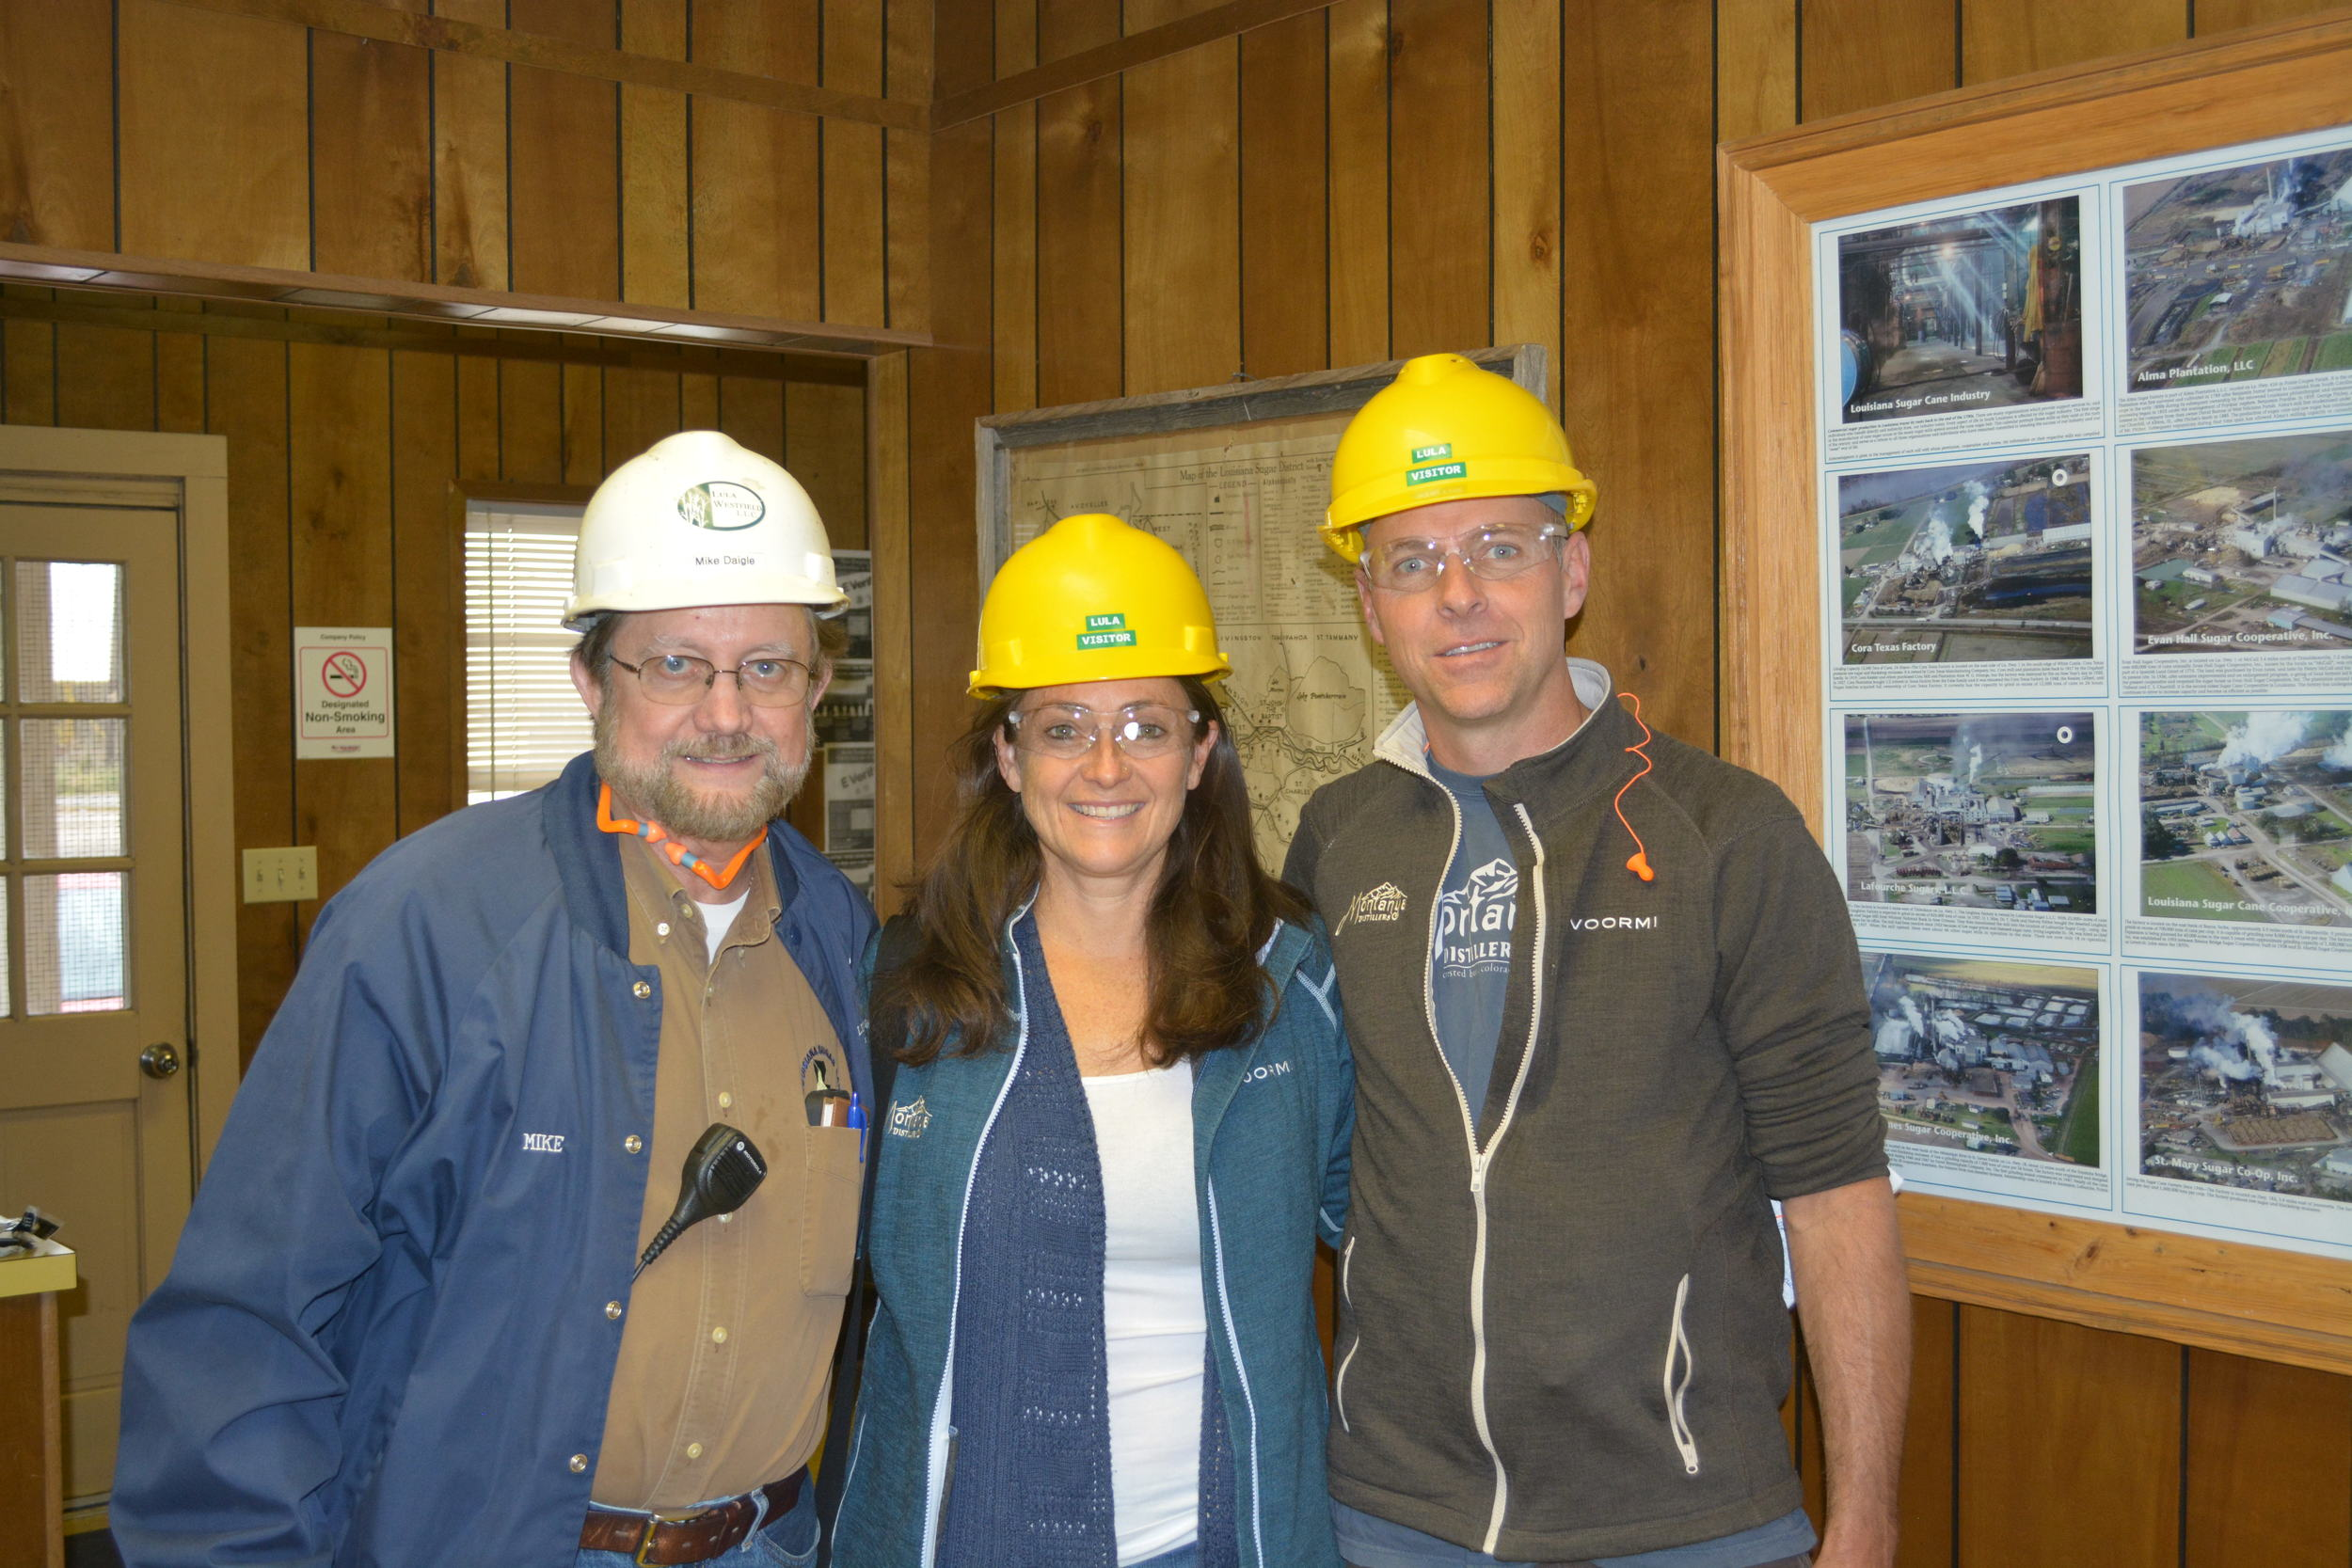 Mike Daigle - Now retired, Mike was a 6th generation family owner and cane grower of the Lula Sugar Mill, shown here with Karen and Brice Hoskin of Montanya Distillers